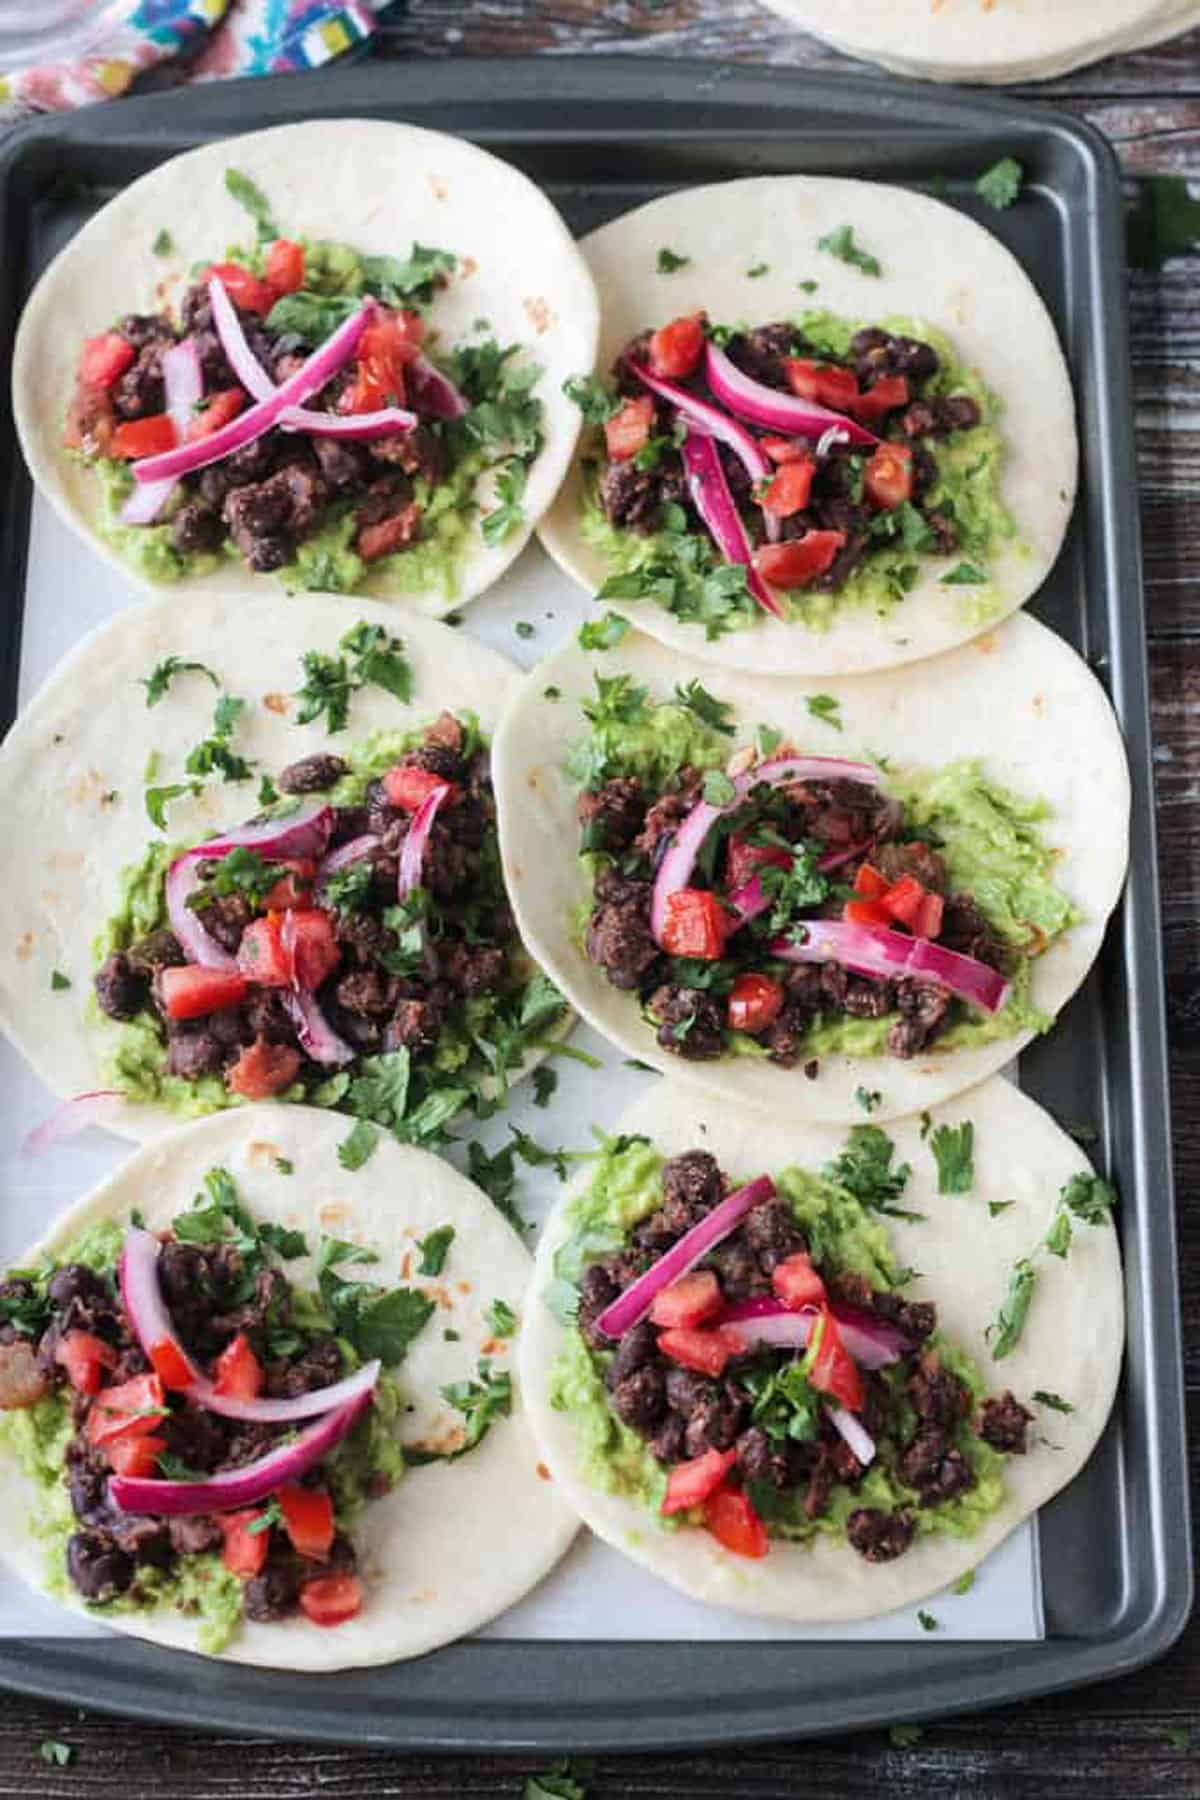 6 tortillas laid out flat with black beans, guacamole, pickled red onions, and cilantro.